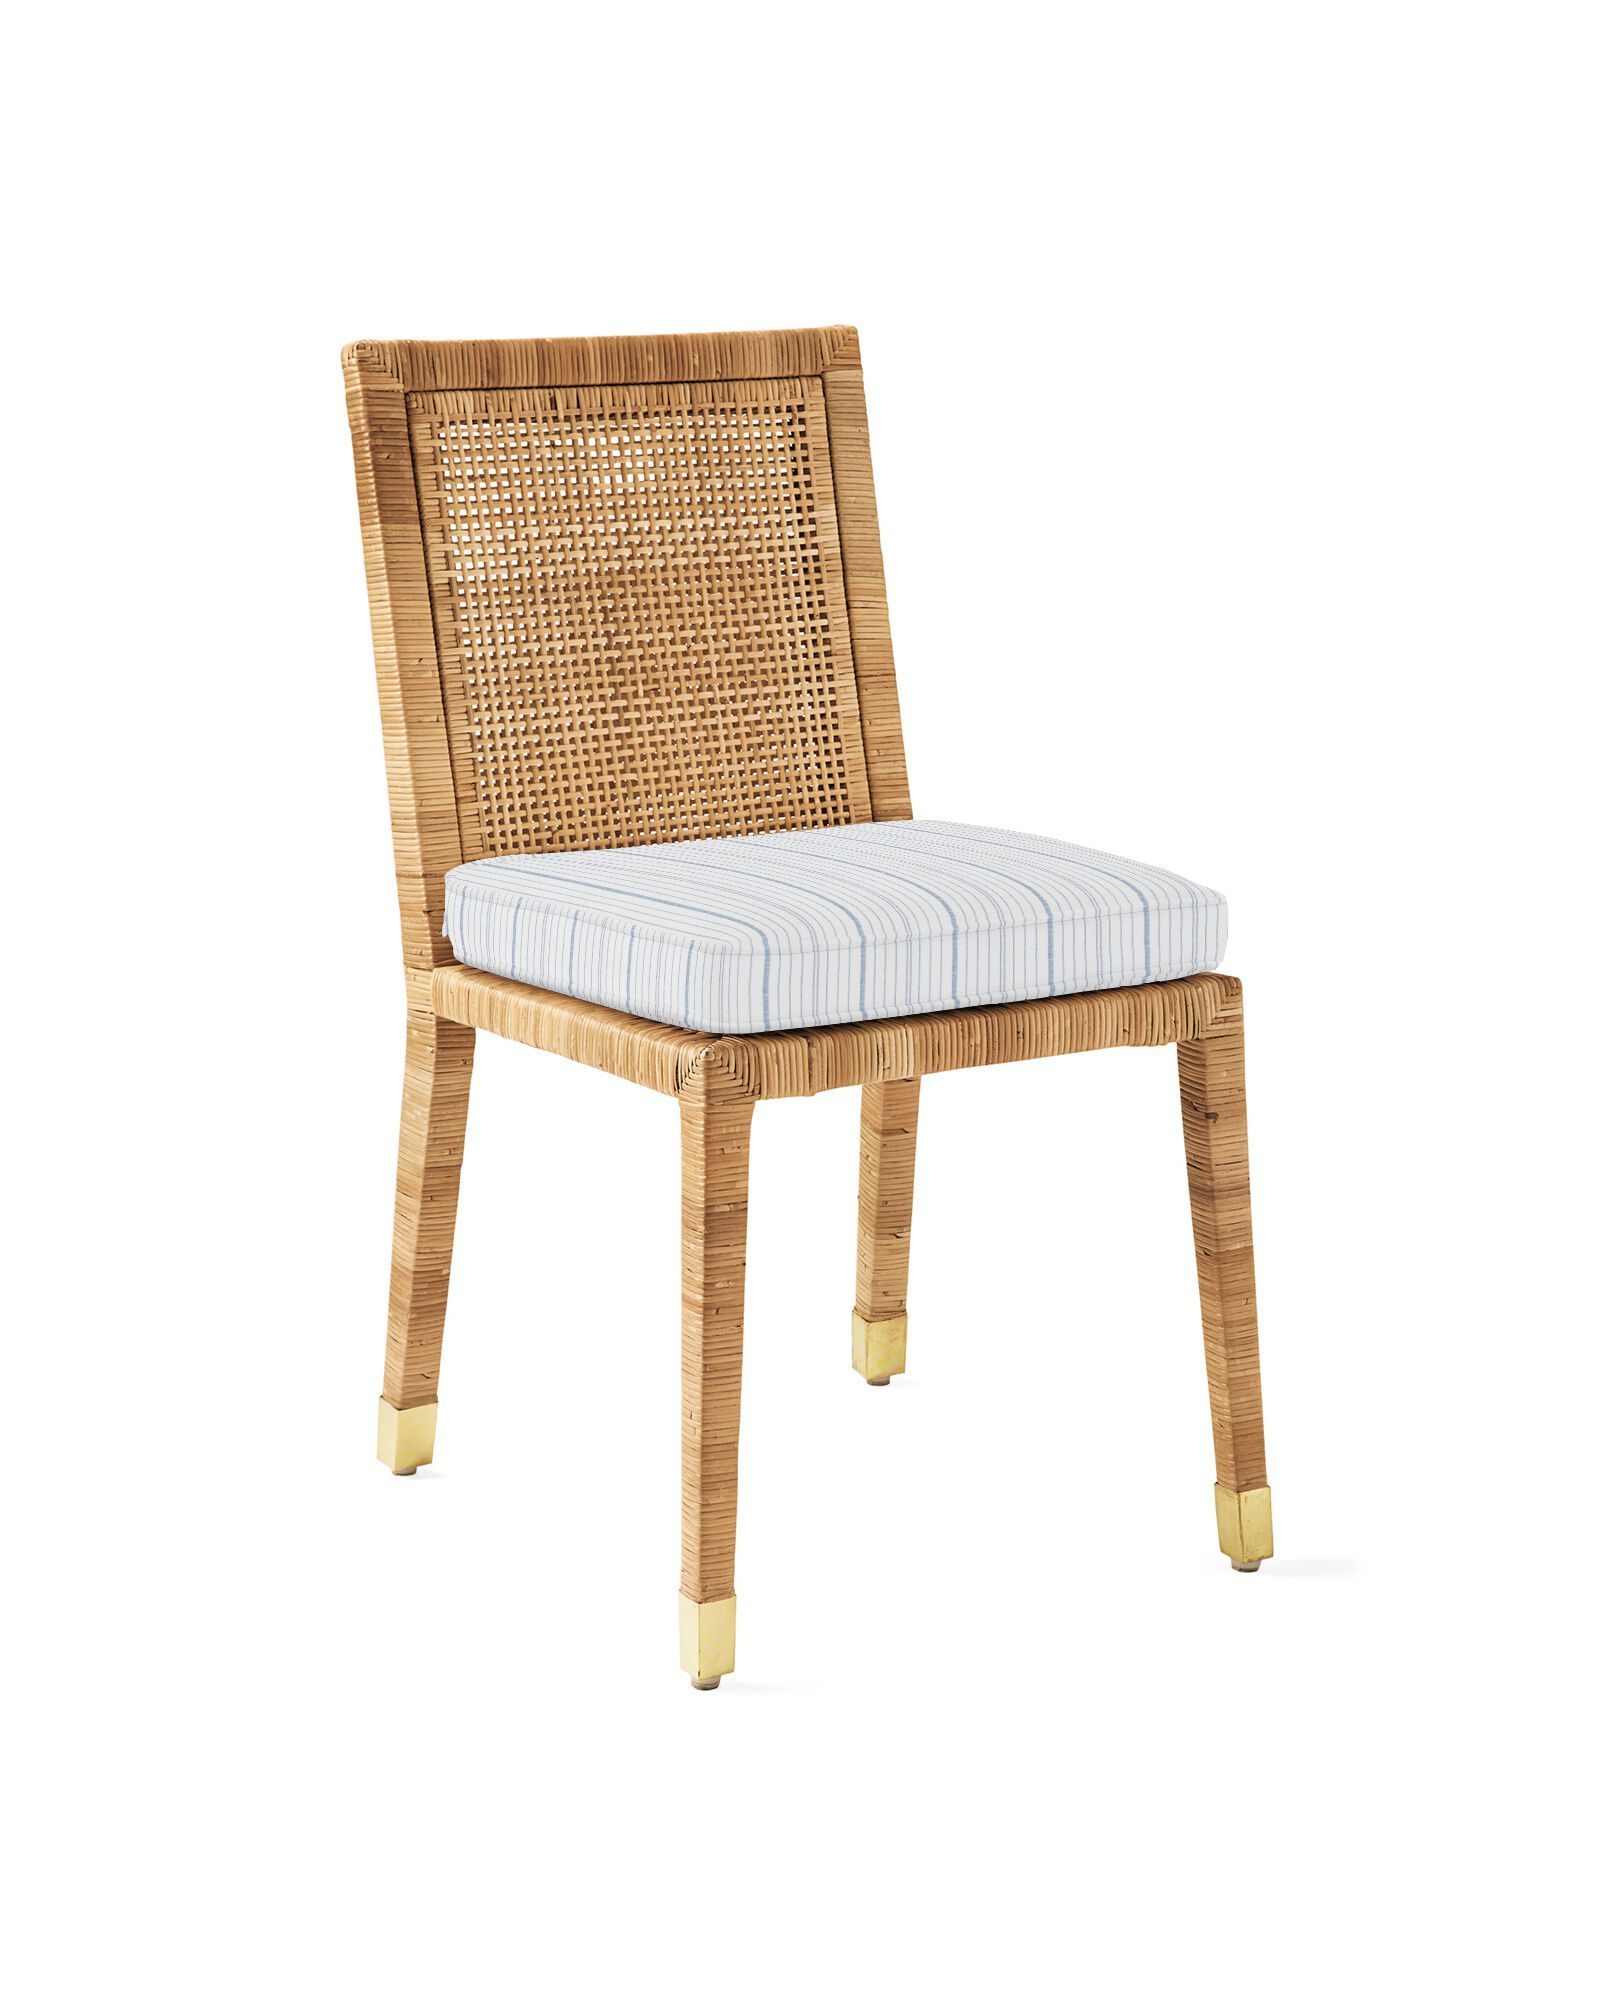 Cushion Cover for Balboa Side Chair - Natural, Surf Stripe Navy